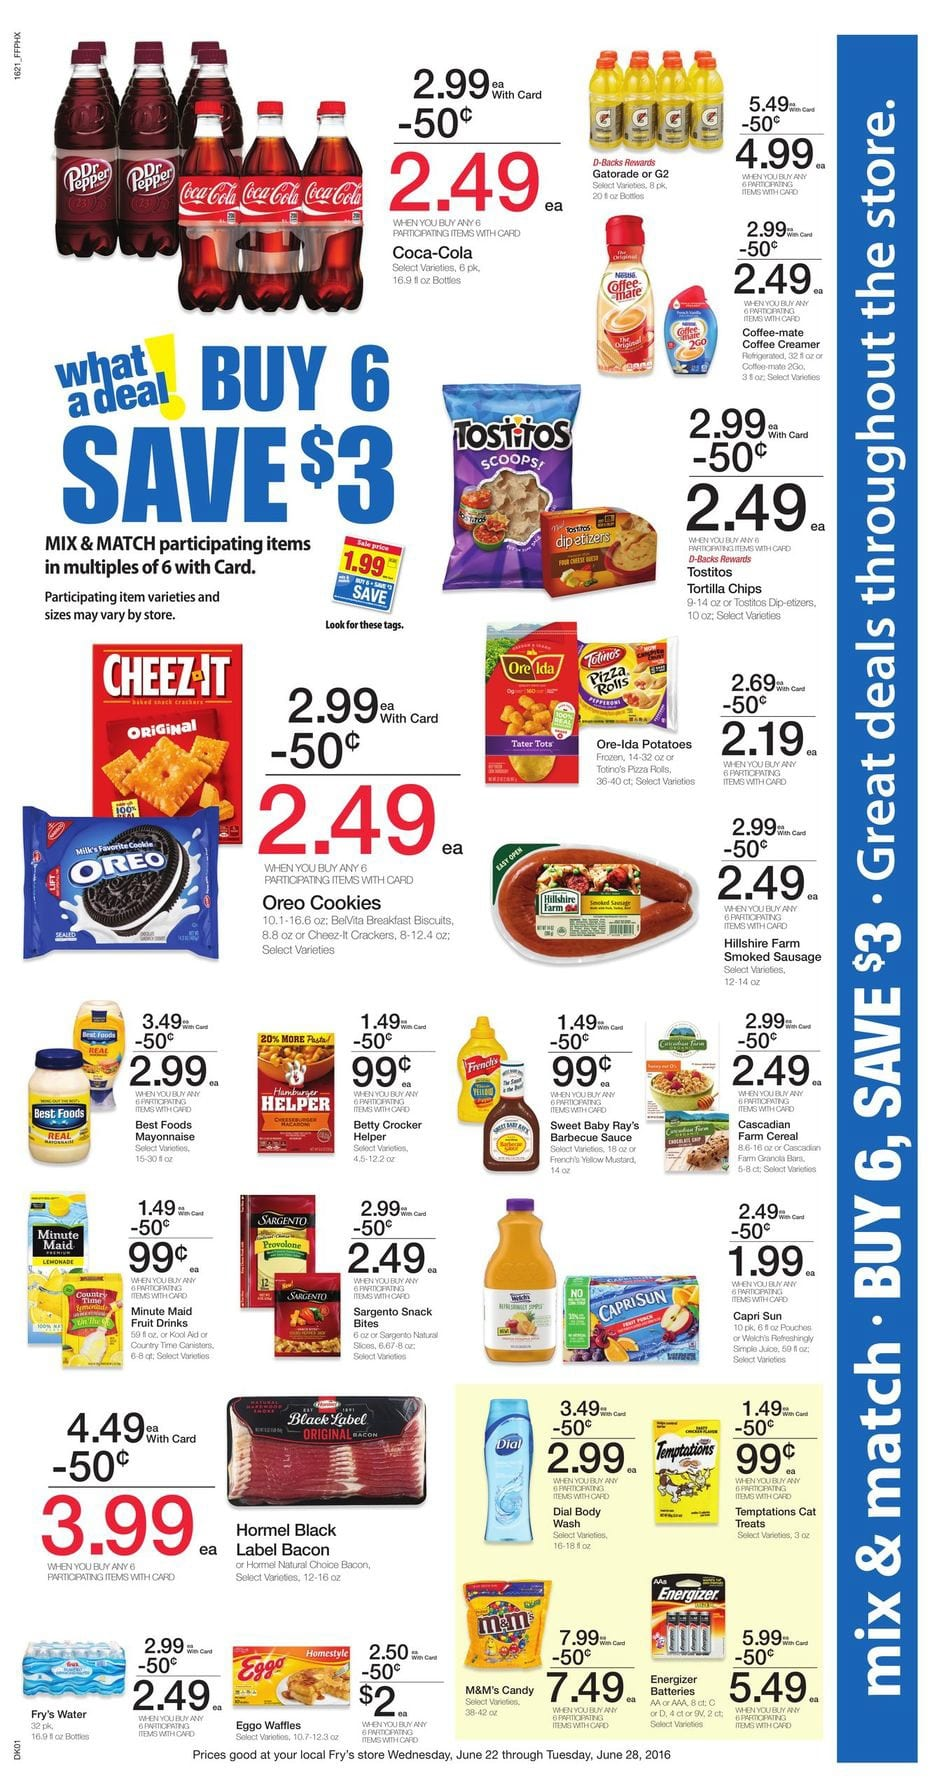 Frys Weekly Ad Jun 22 28 2016 Deals And Coupon Savings